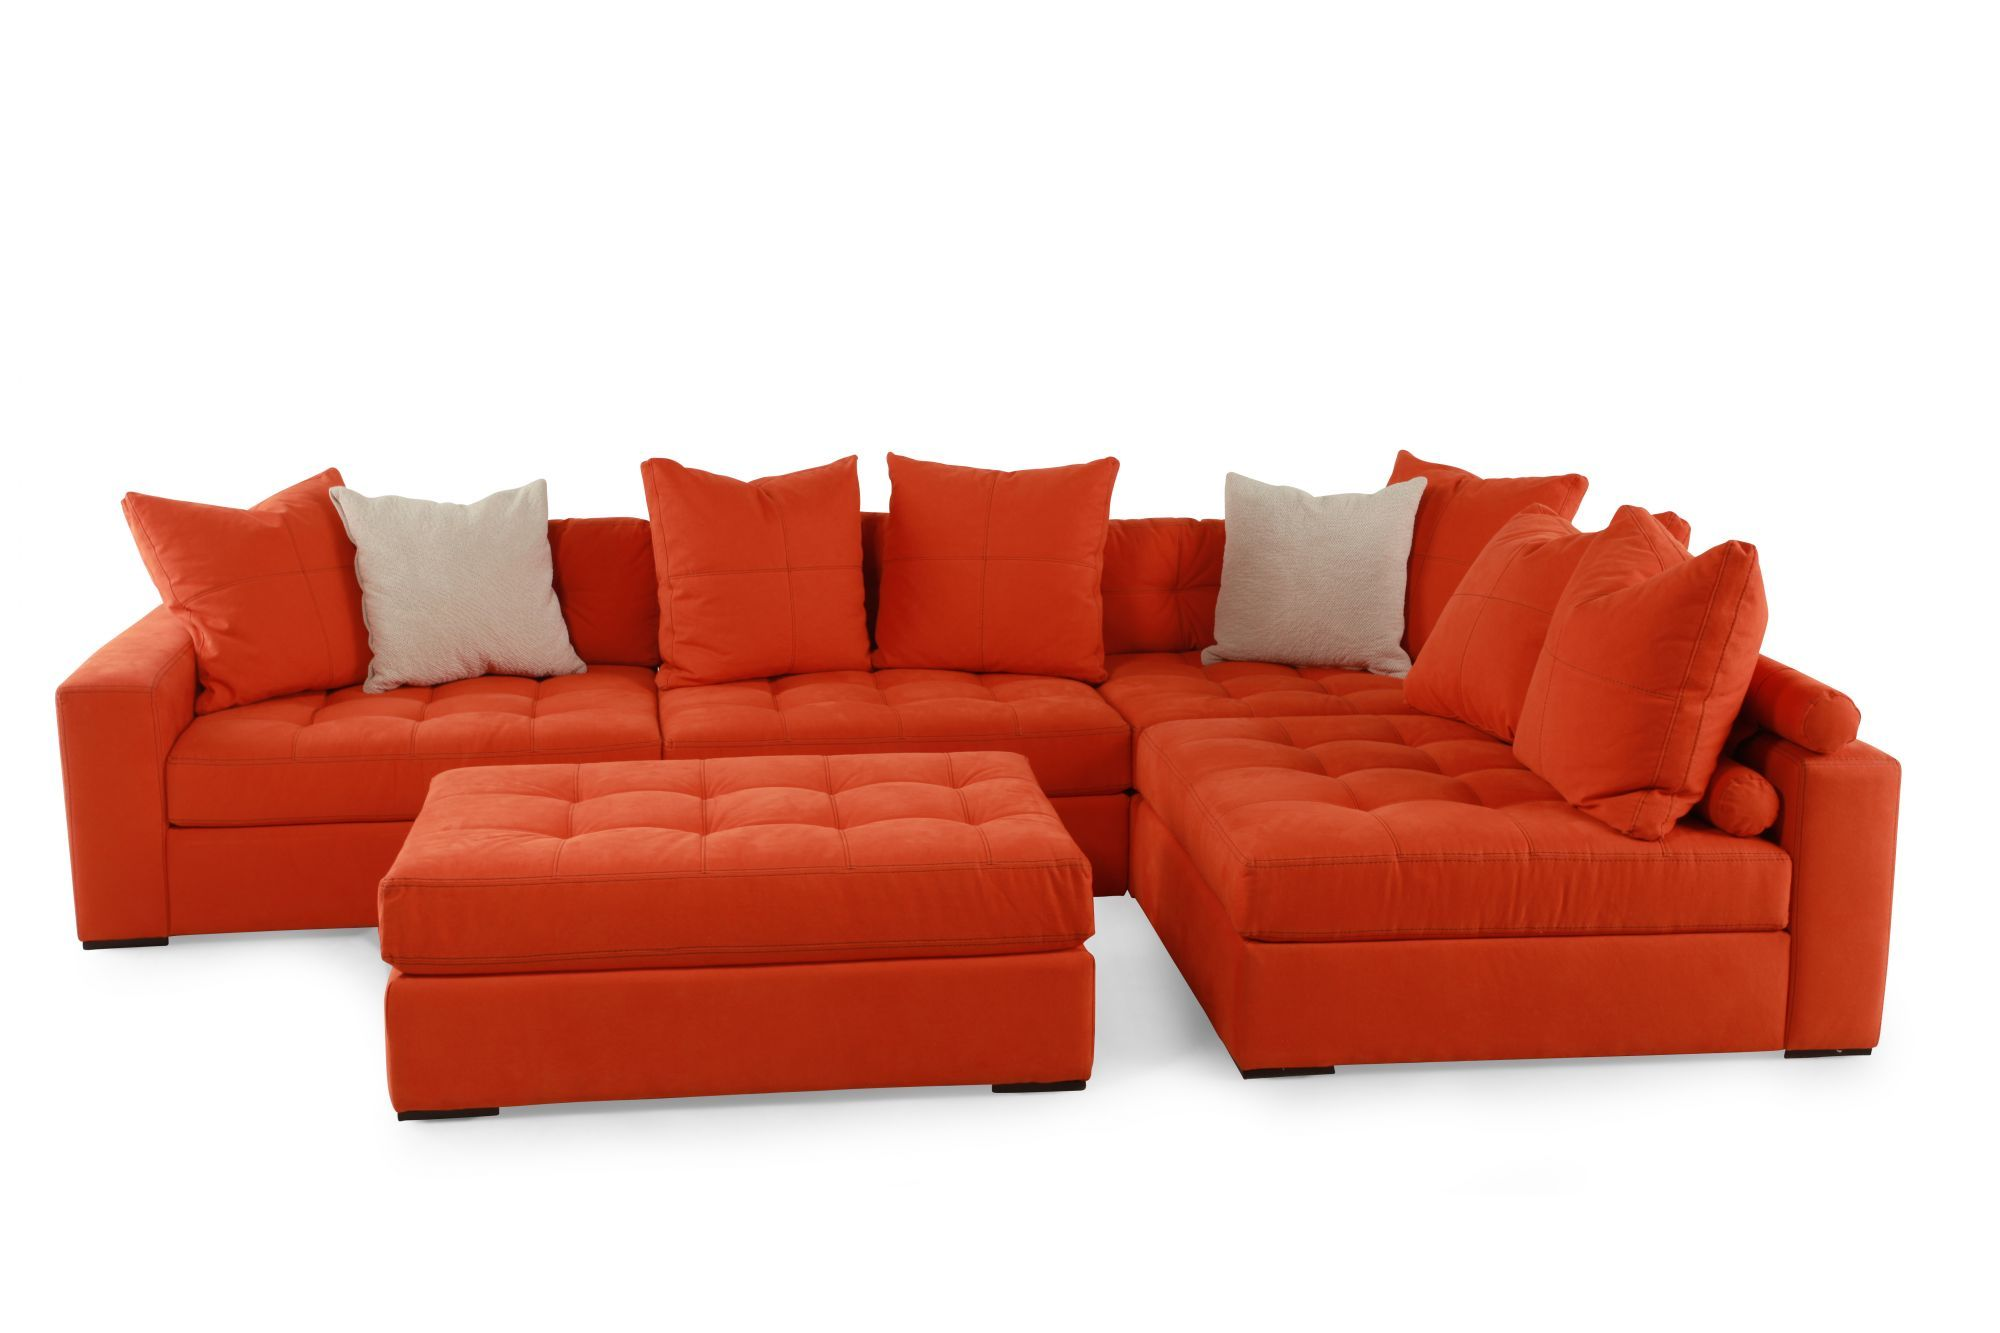 This is the sofa I am going to buy for the Family RoomFor the